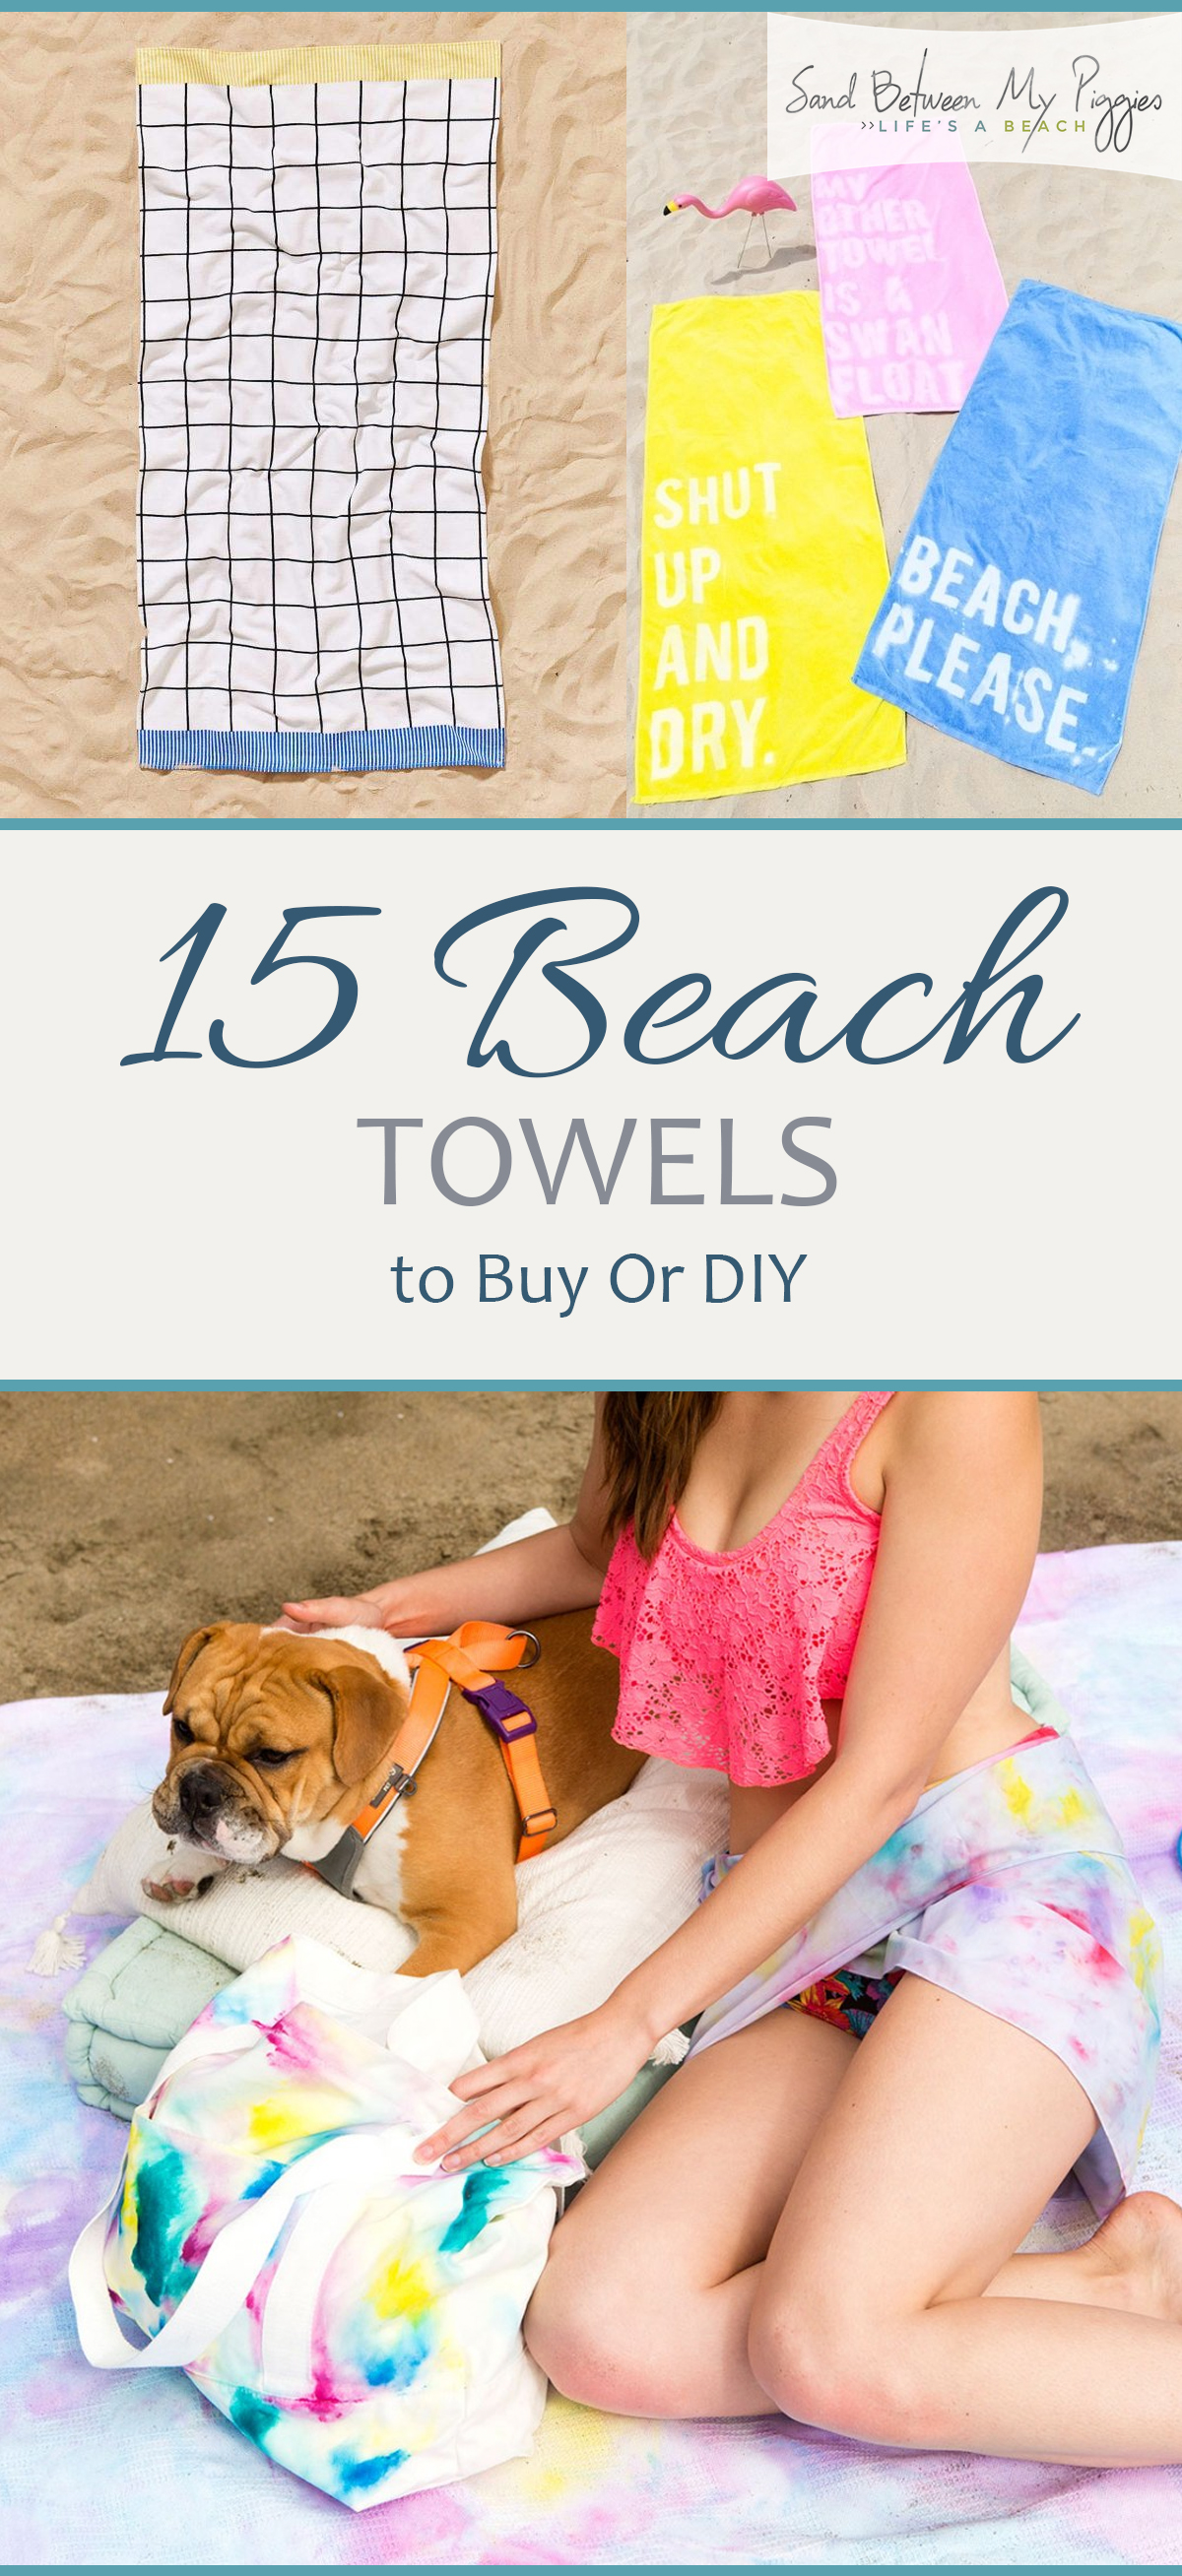 Beach Towels, Homemade Beach Towels, Beach Towels for Less, Beach Hacks, Handmade Beach Towels, Easy DIY Beach Towels, Popular Pin